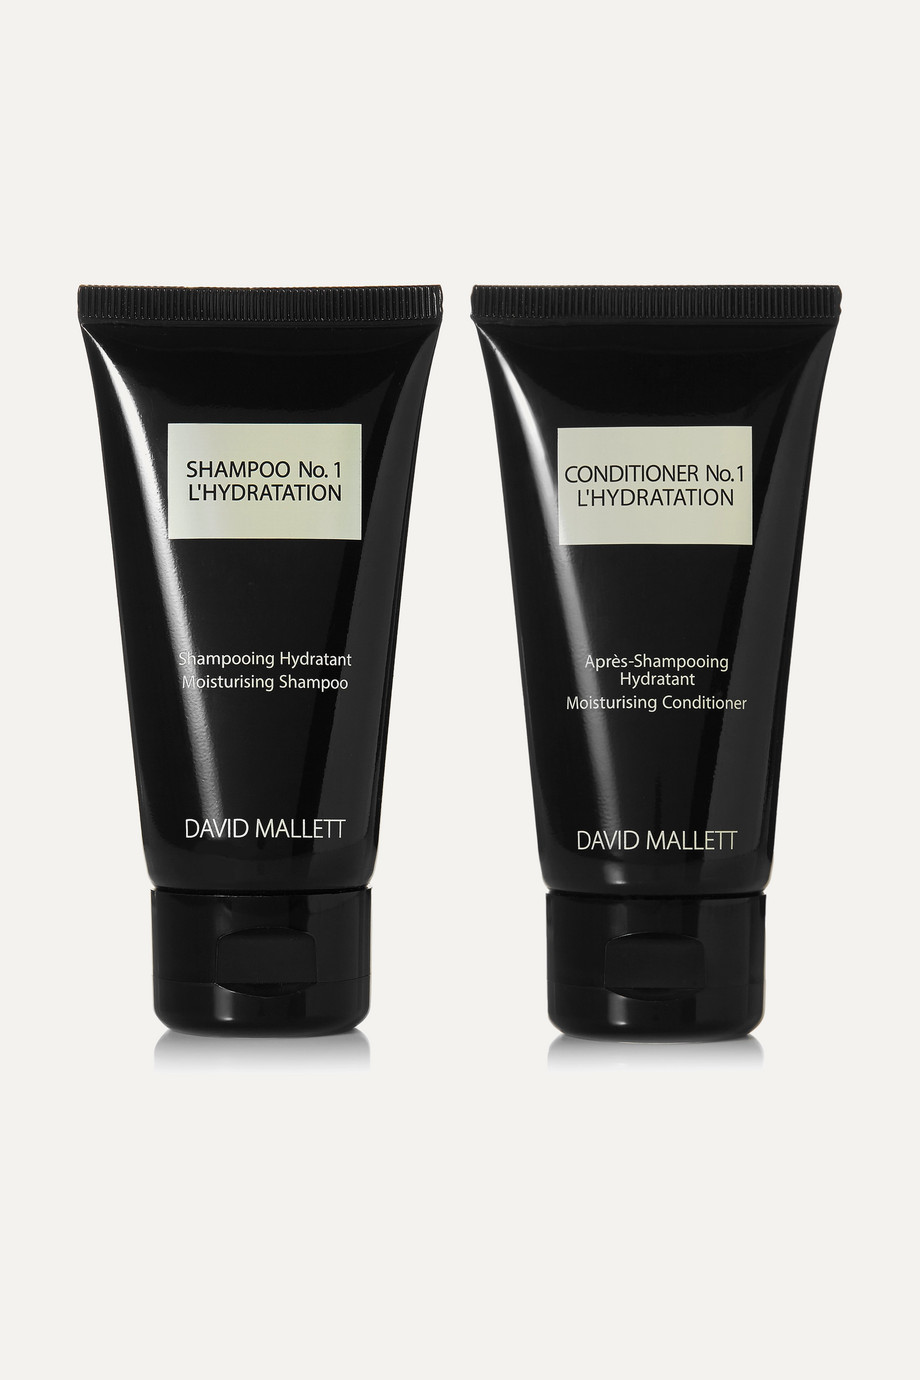 DAVID MALLETT L'Hydratation Travel Kit, 2 x 50ml